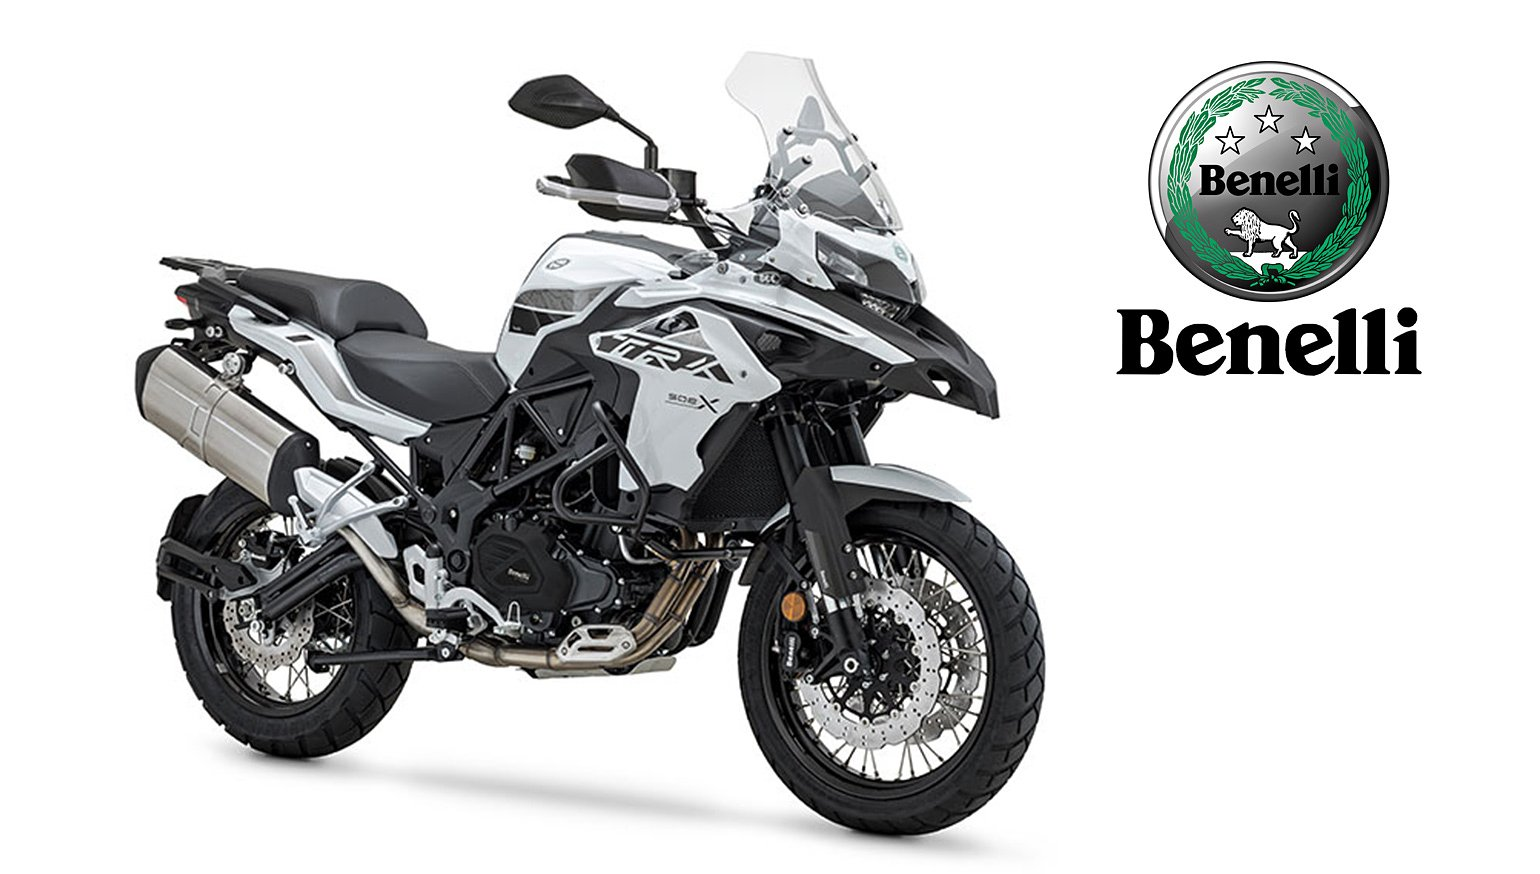 Benelli brings 2021 TRK 502 ADV middleweights to the U.S.